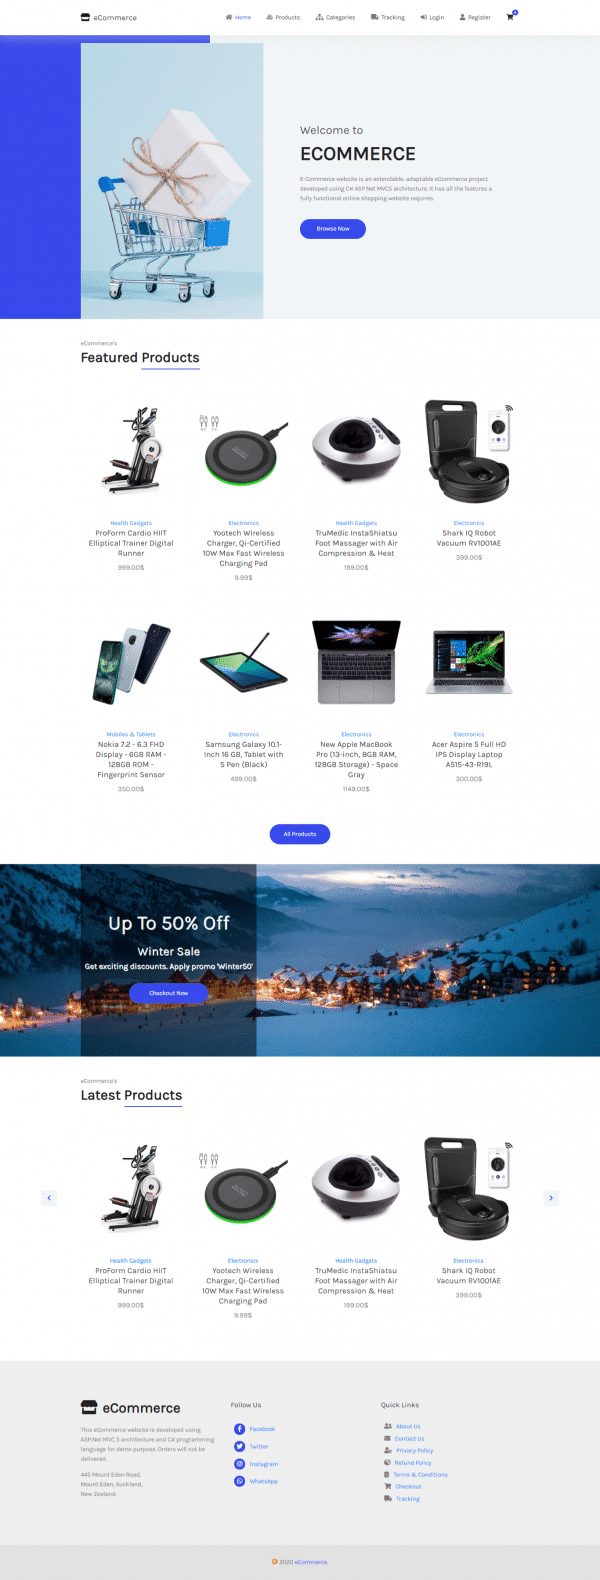 e1-ecommerce website